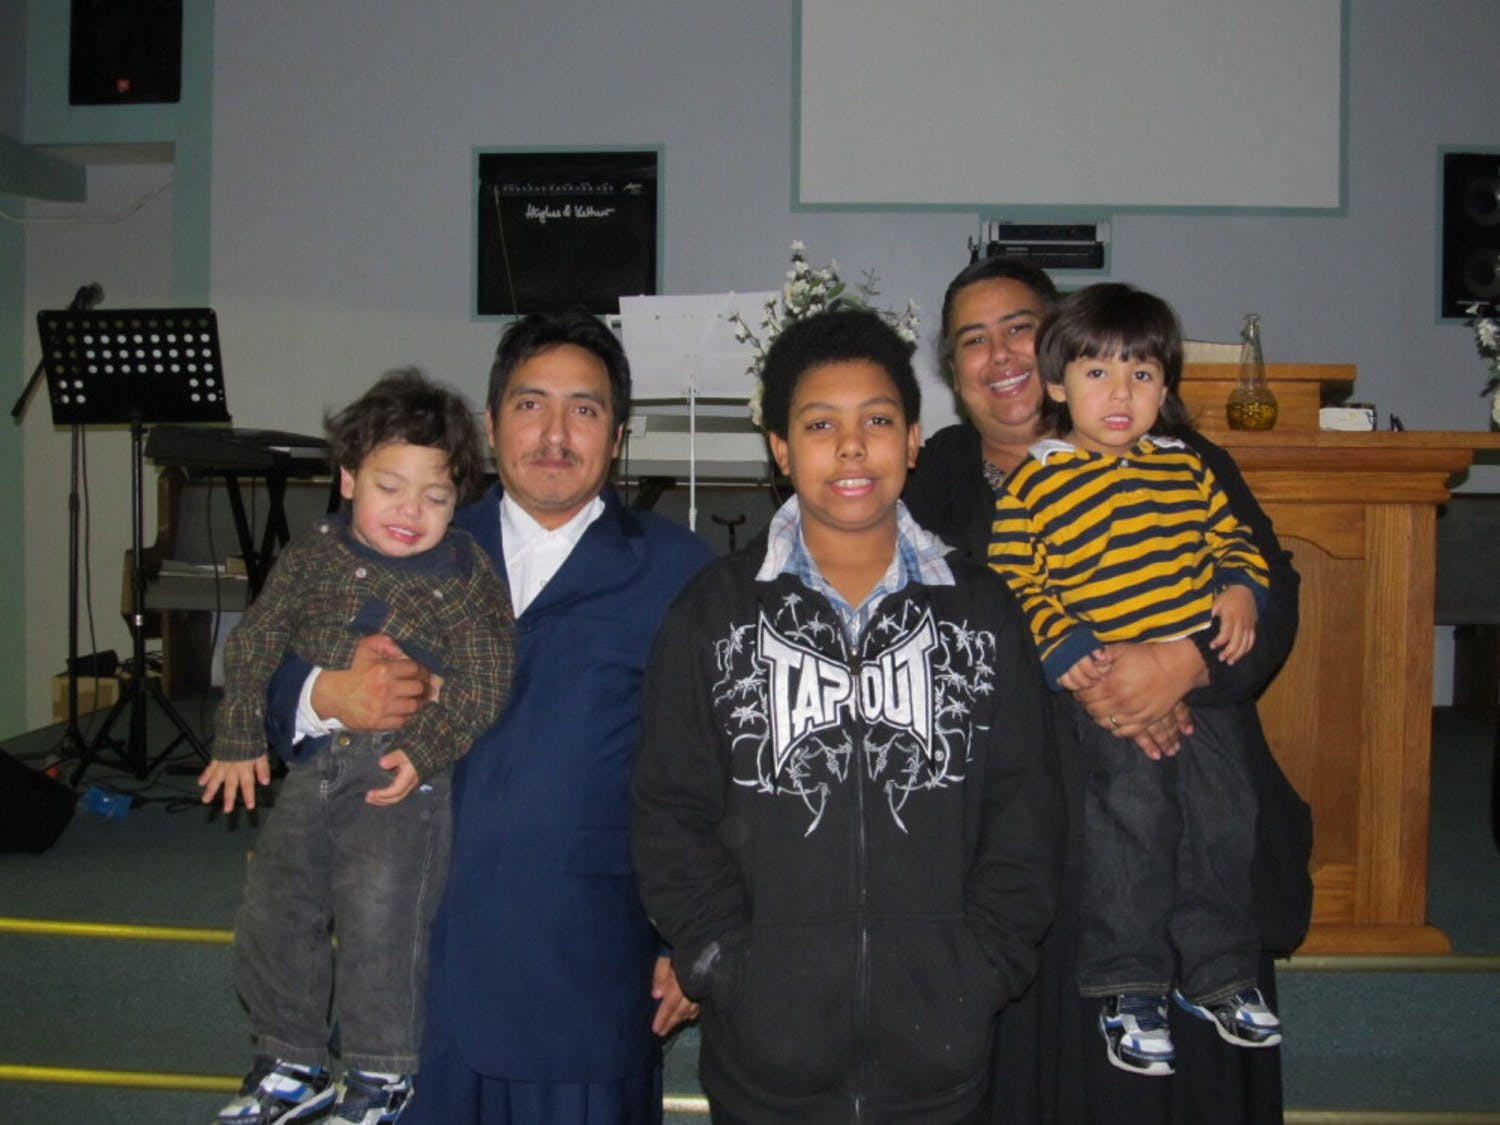 The Flores-Colondres family poses for a photo at an Alabama church in 2010.